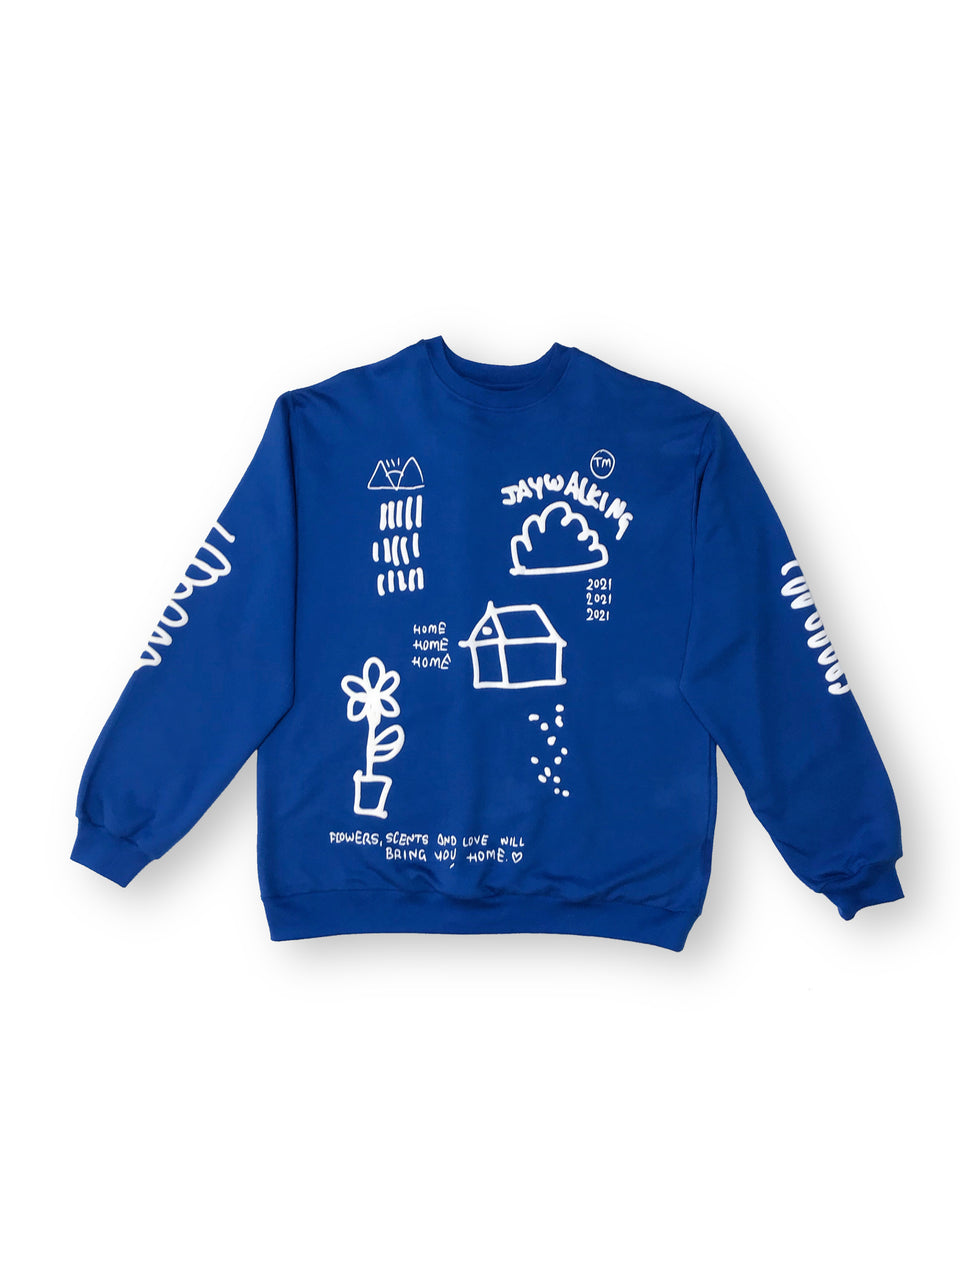 HOME SWEATSHIRT IN INK BLUE [UNISEX]